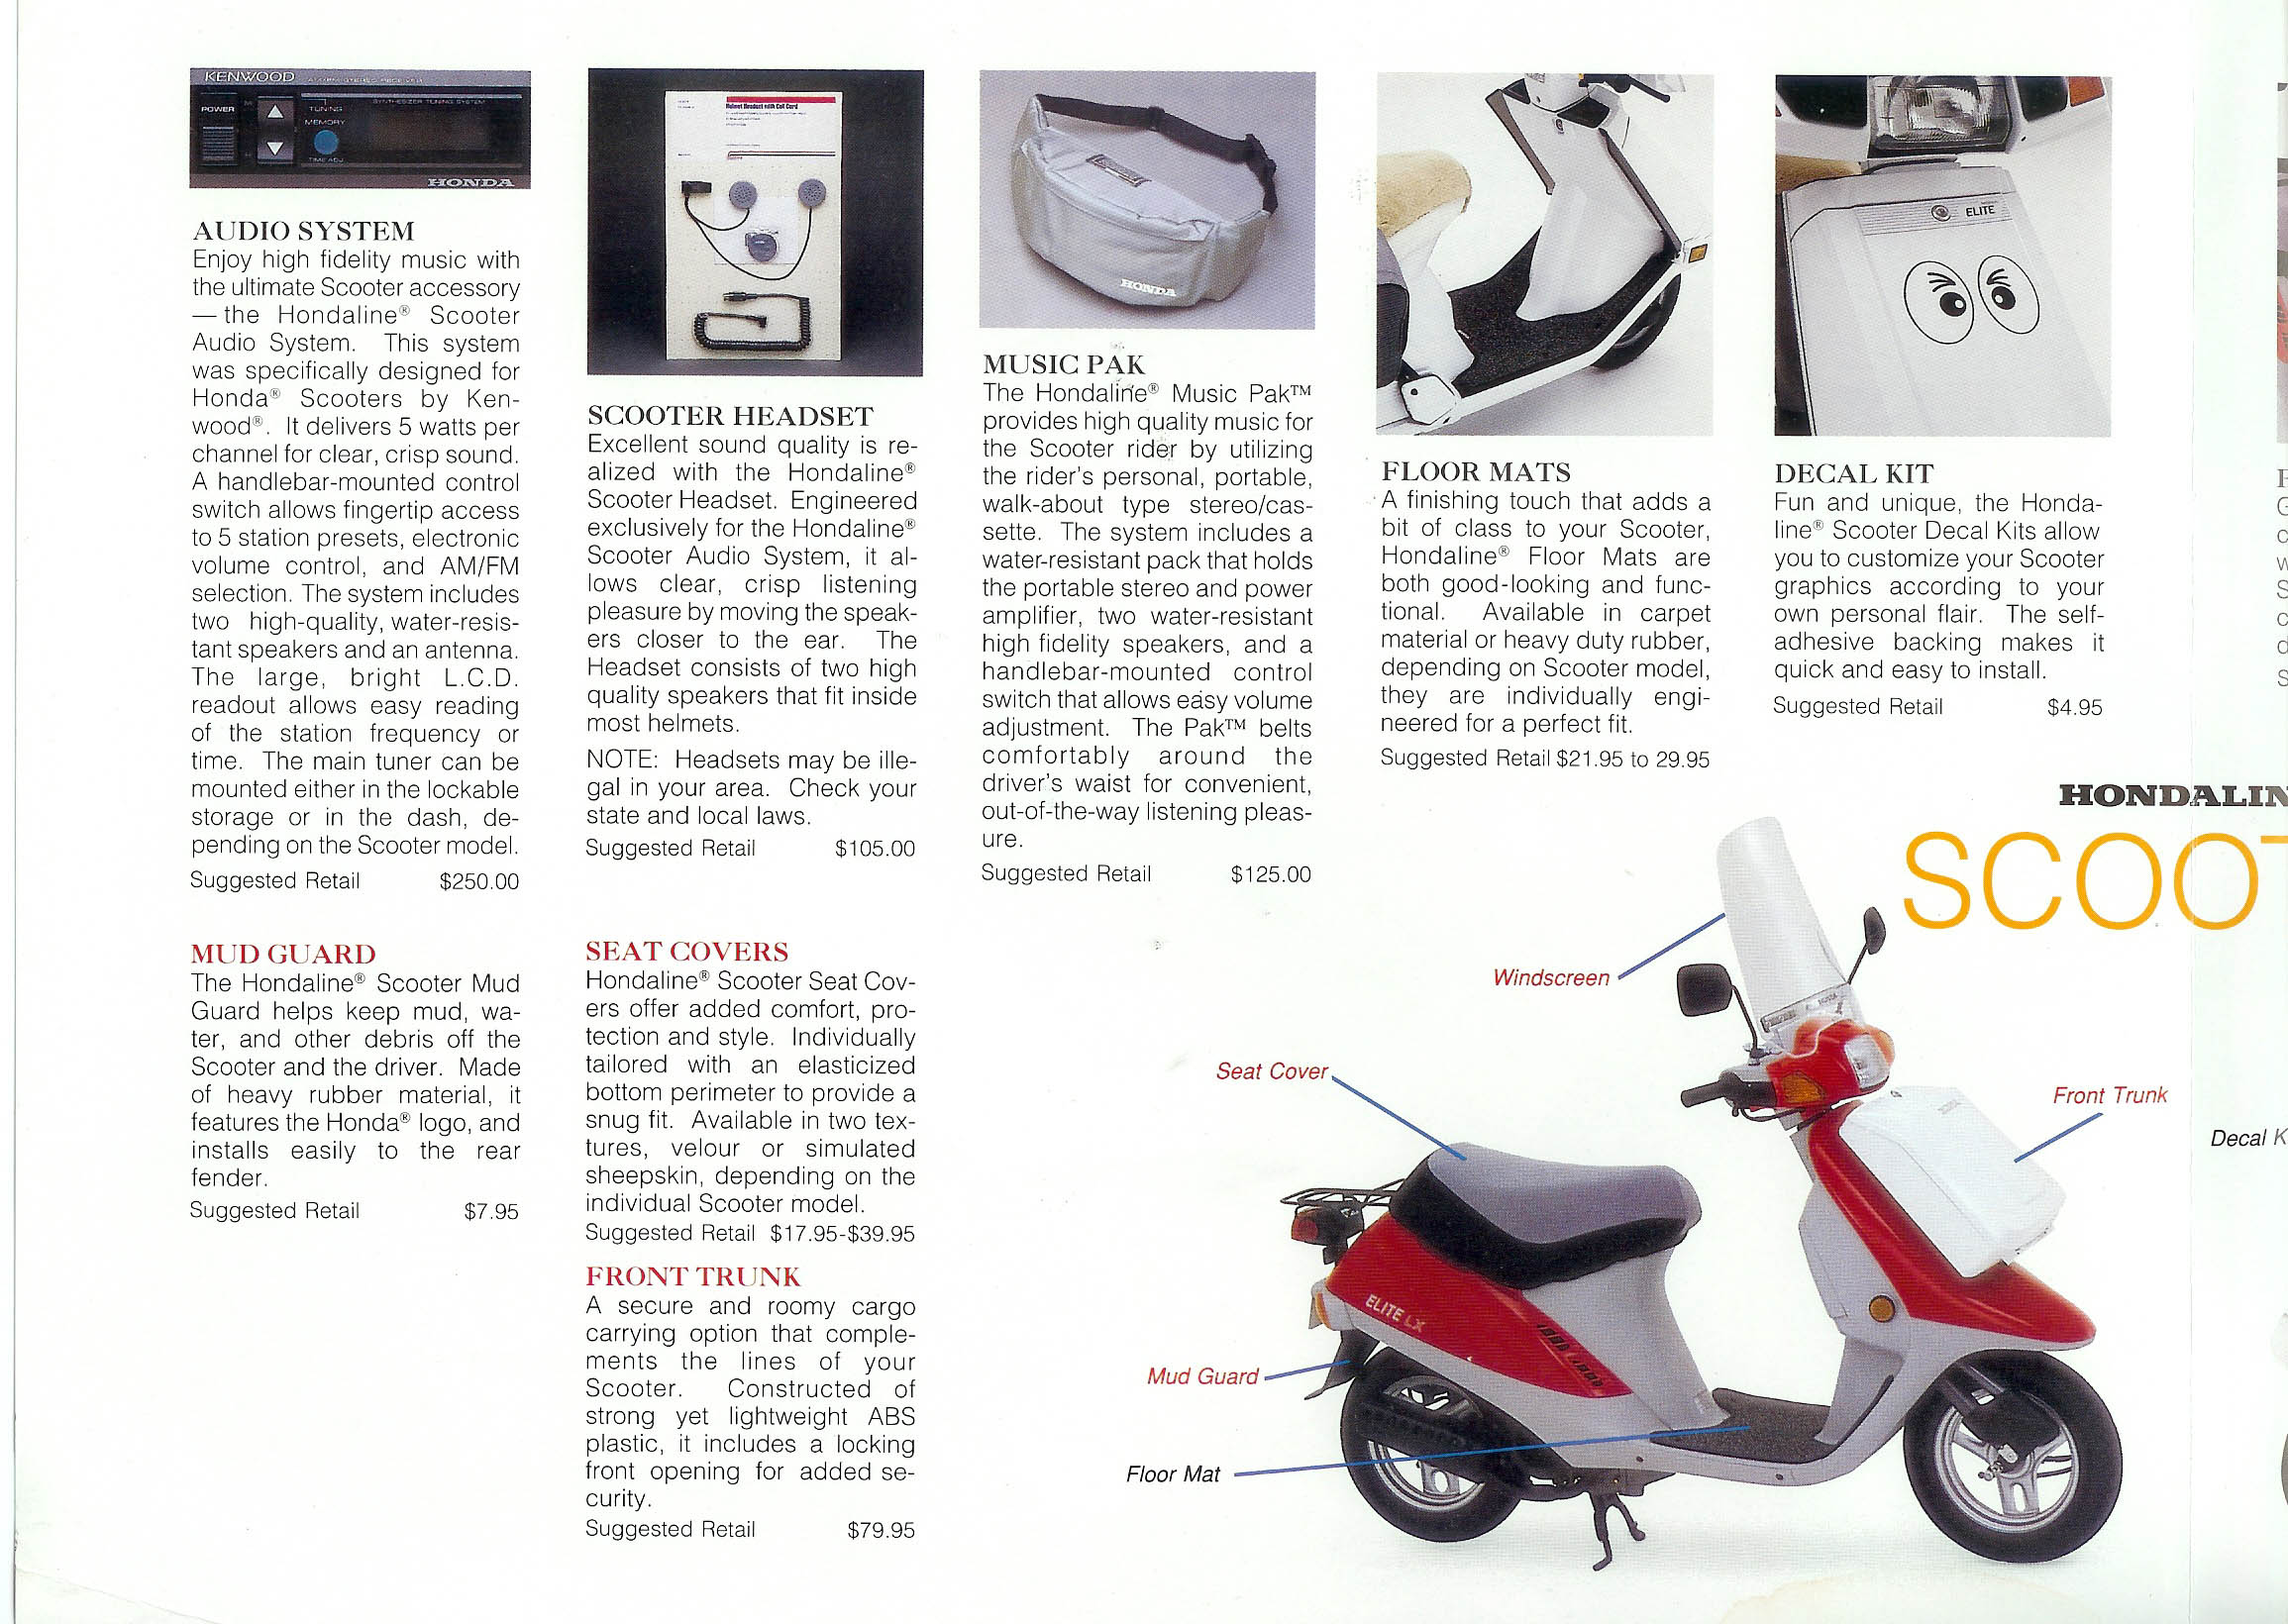 Honda Elite 80 Fuse Box Books Of Wiring Diagram 89 Buick Century General Scooter Information Rh Jacksscootershop Com